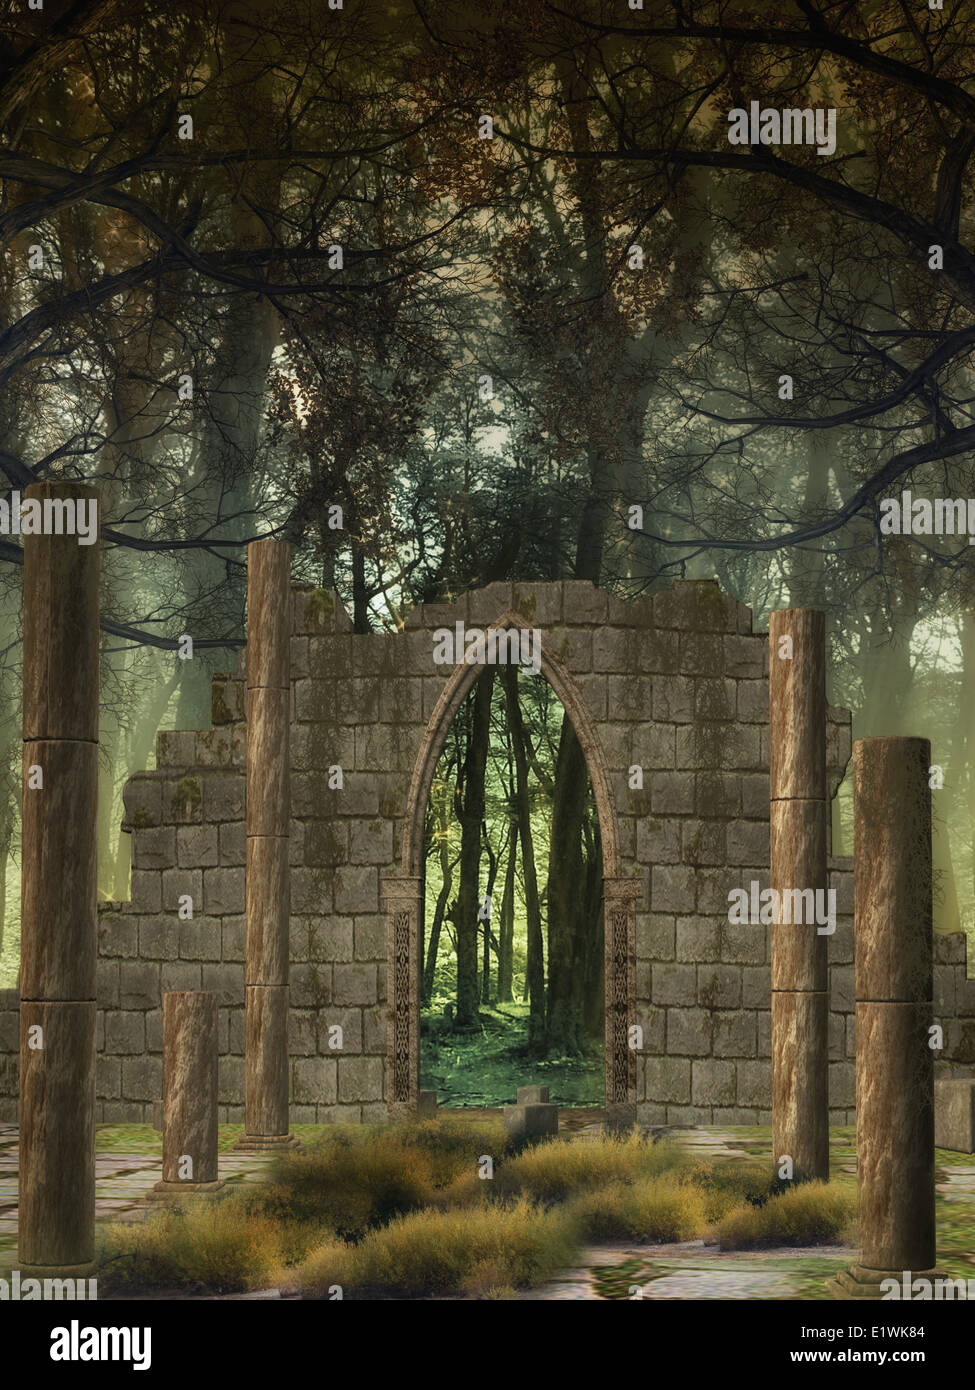 Fantasy Background in a forest with old structure - Stock Image